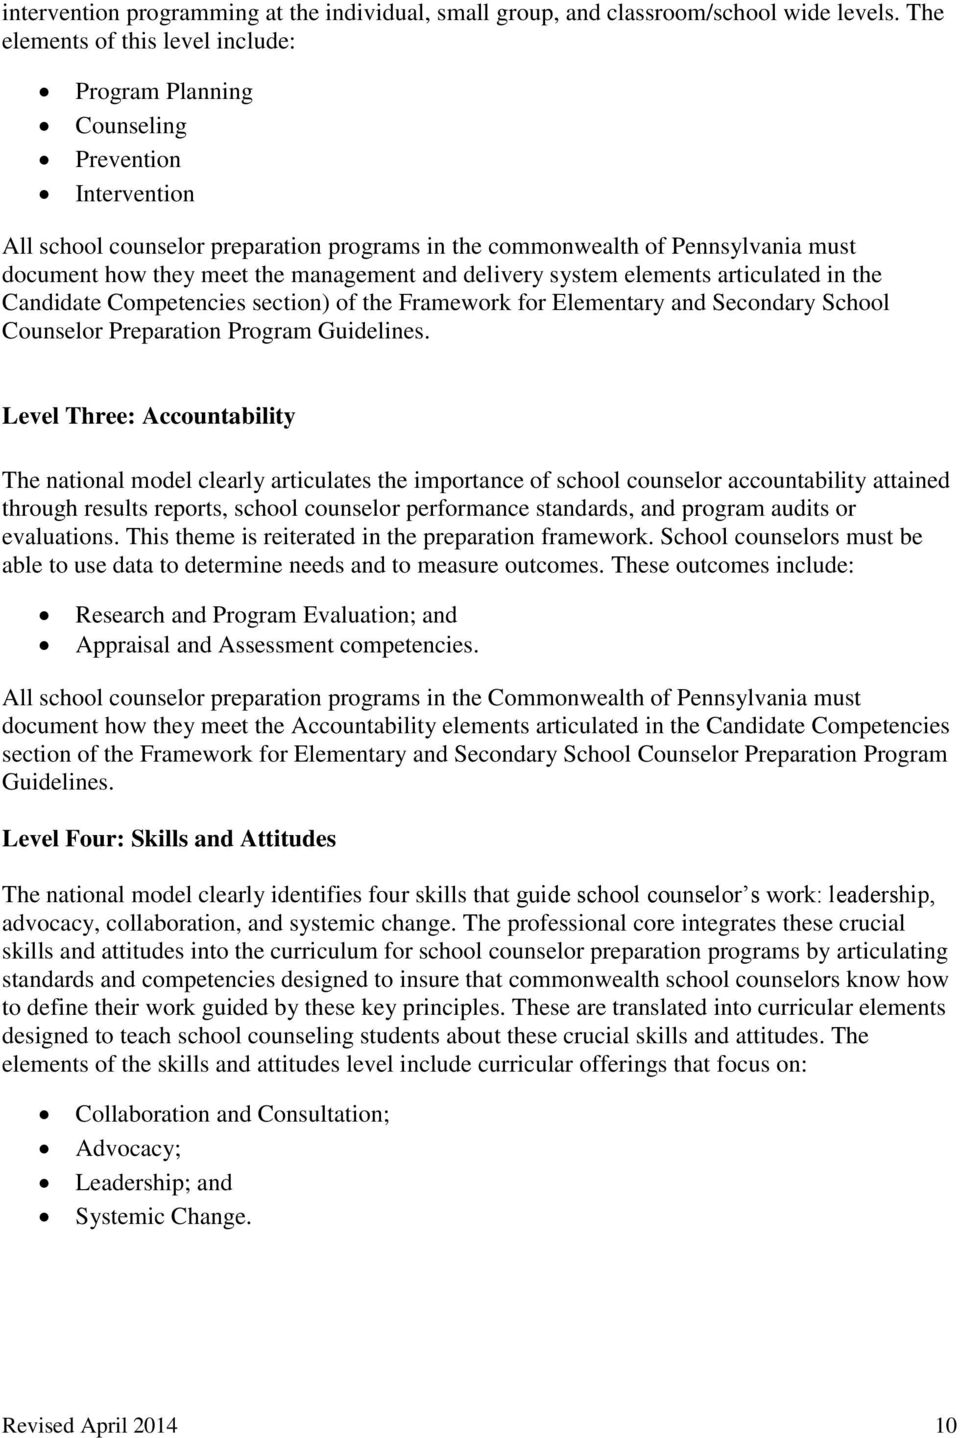 management and delivery system elements articulated in the Candidate Competencies section) of the Framework for Elementary and Secondary School Counselor Preparation Program Guidelines.